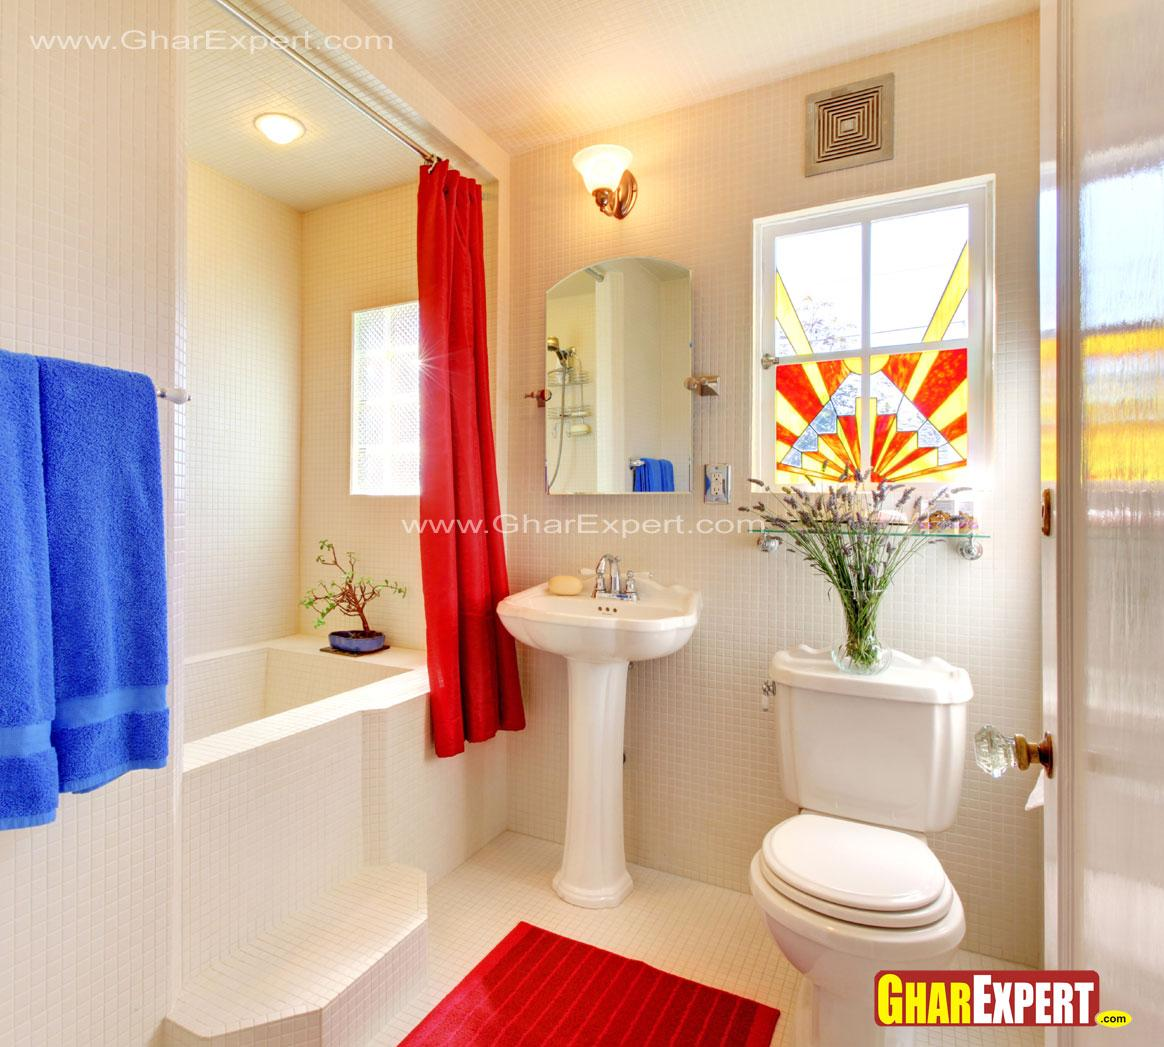 12 by 9 ft spacious bathroom w....